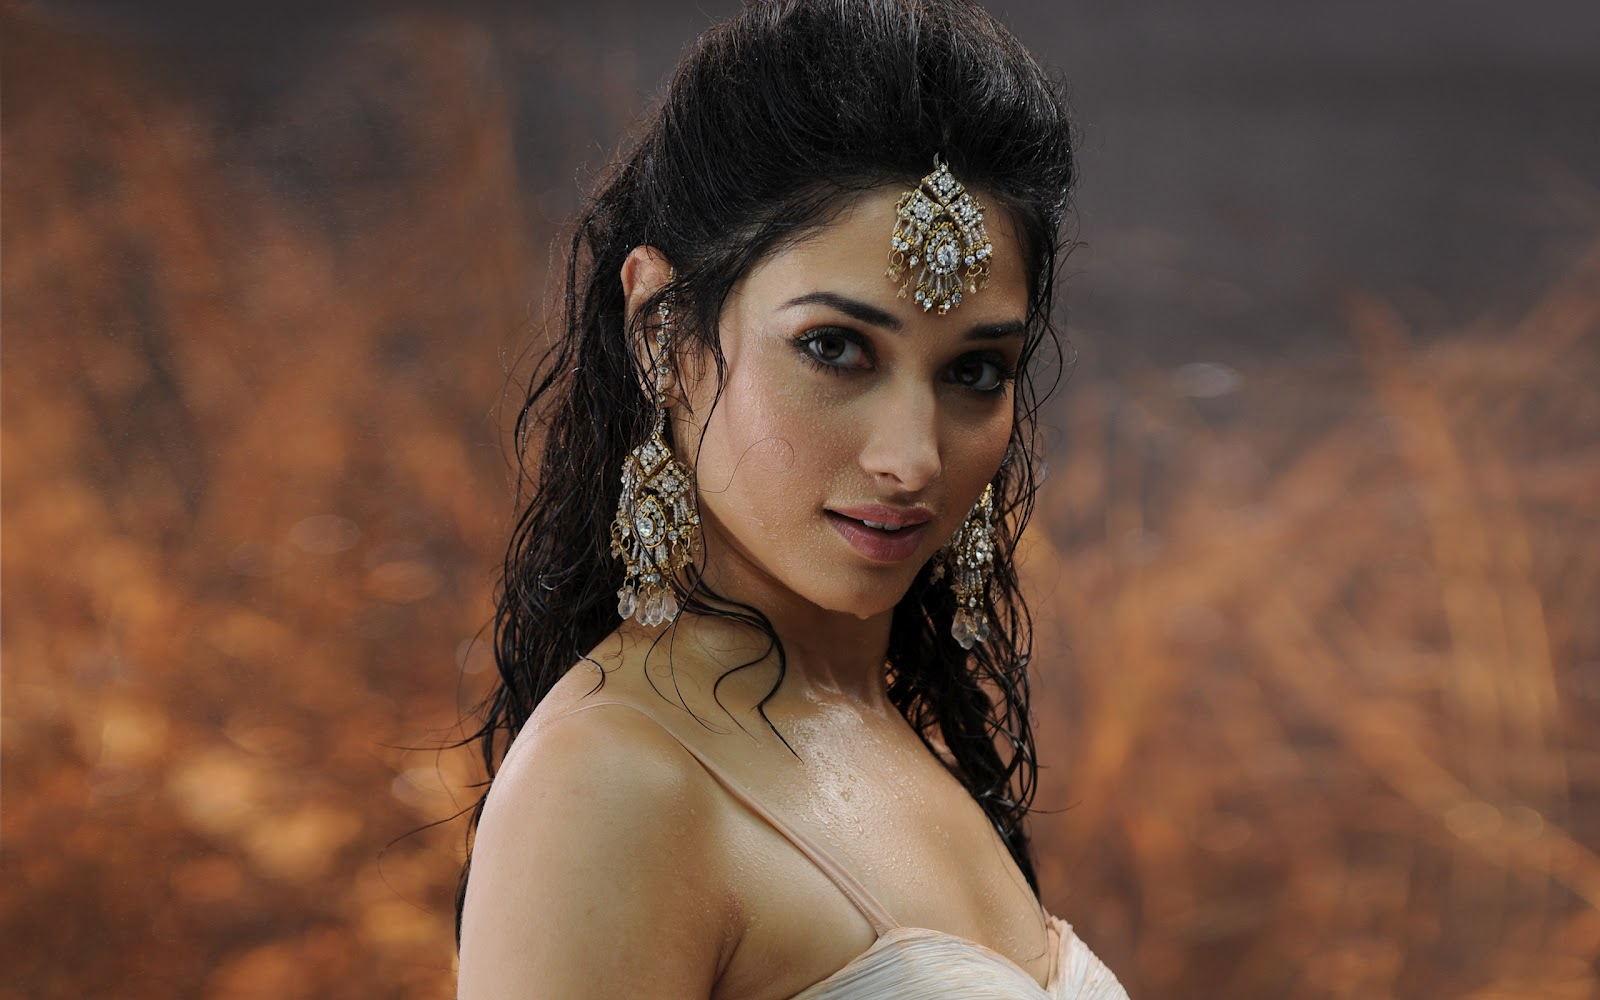 Wallpaper India: INDIAN ACTRESSES HD Wallpapers Part 2